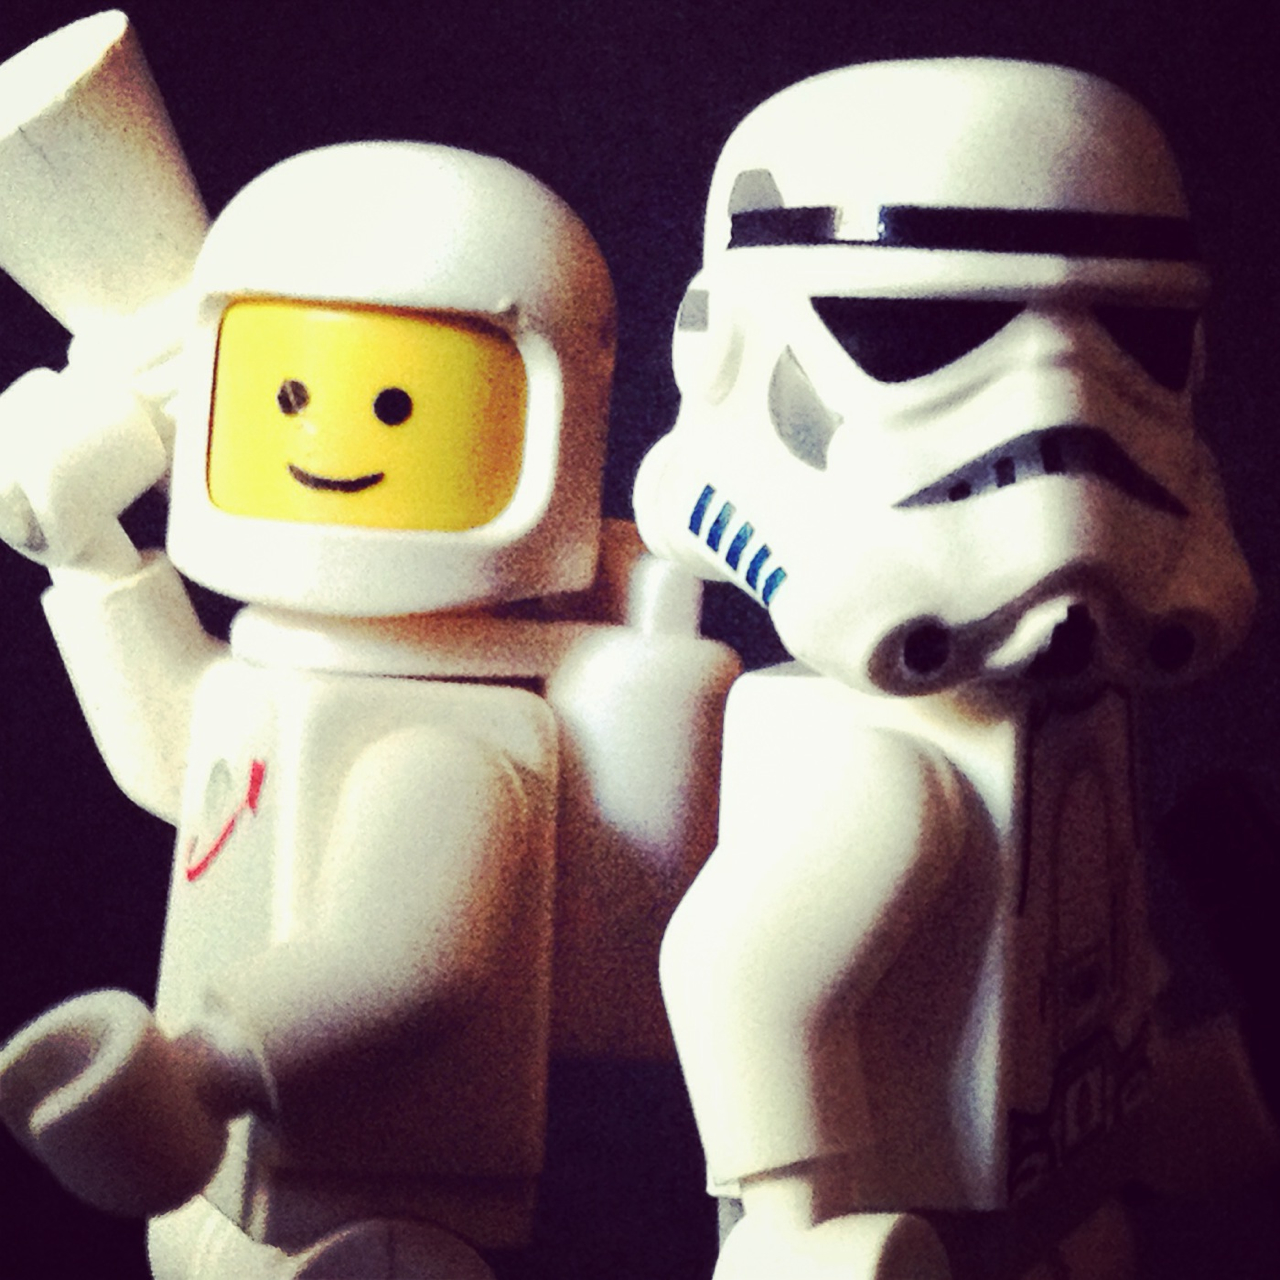 LegoGenre 00220: Classic Space or Star Wars?